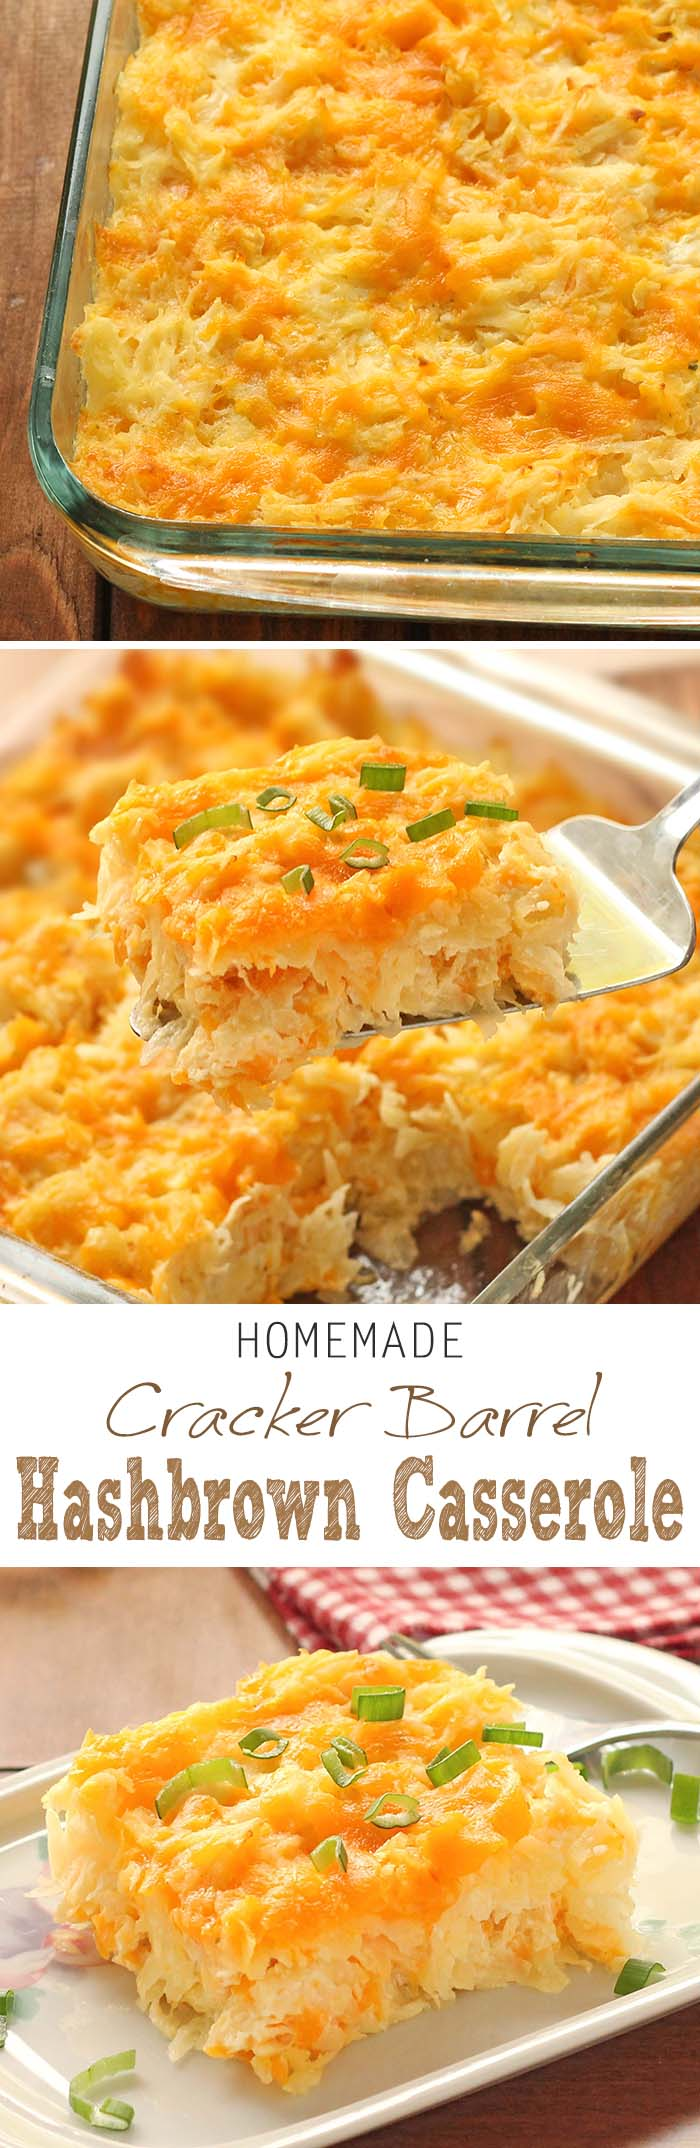 Homemade Cracker Barrel HashBrown Casserole is super easy to whip up ...